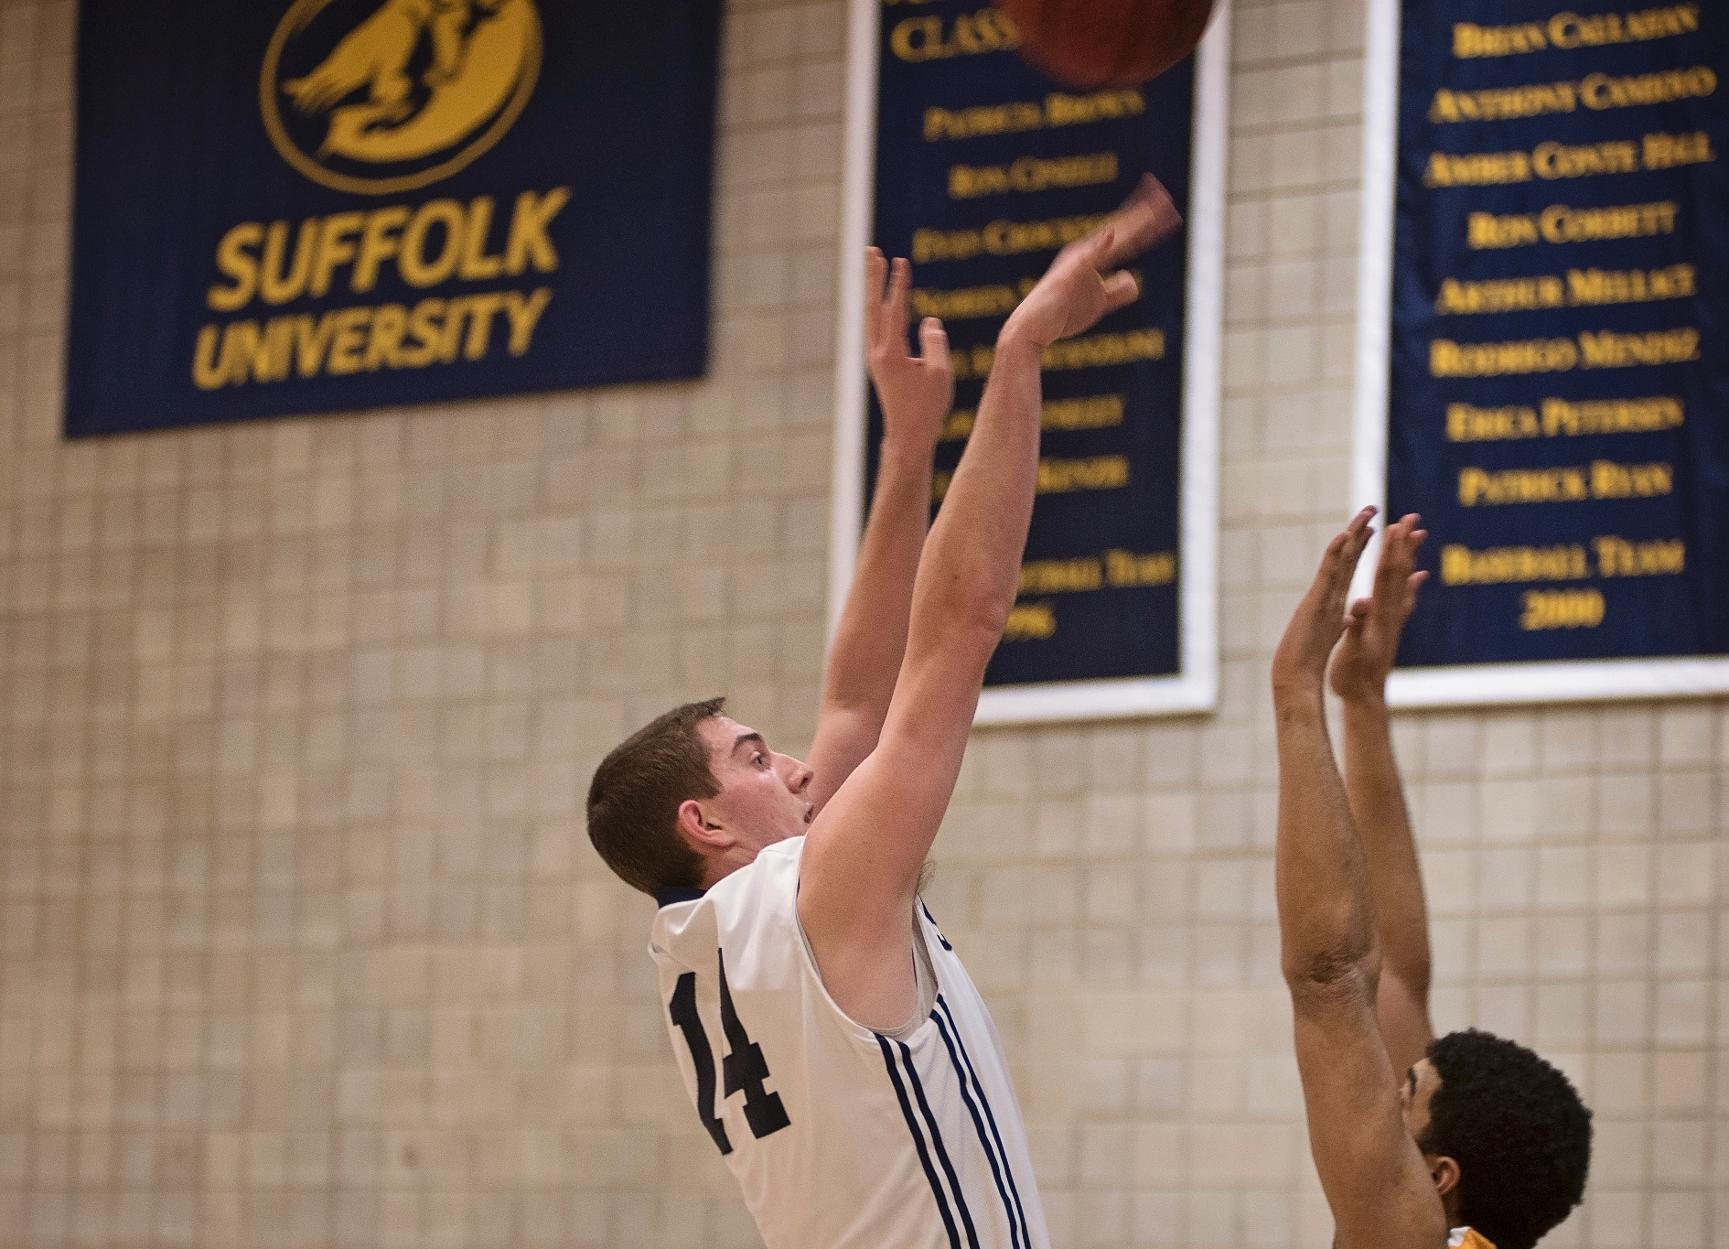 Men's Basketball Comes Up Short Against Emerson, 78-73